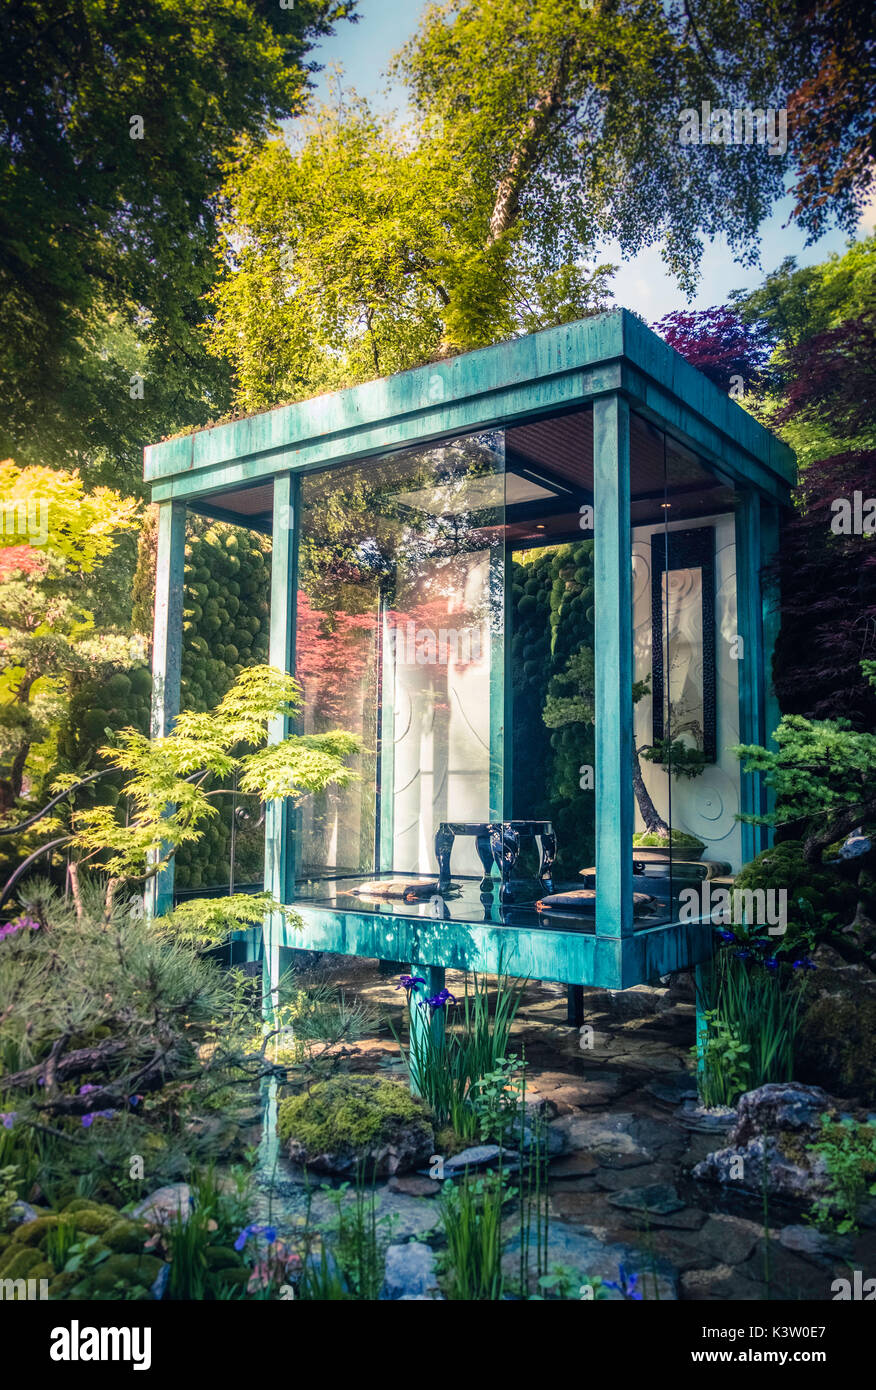 The Gosho No Niwa artisan garden at the 2017 Chelsea Flower Show, London. - Stock Image